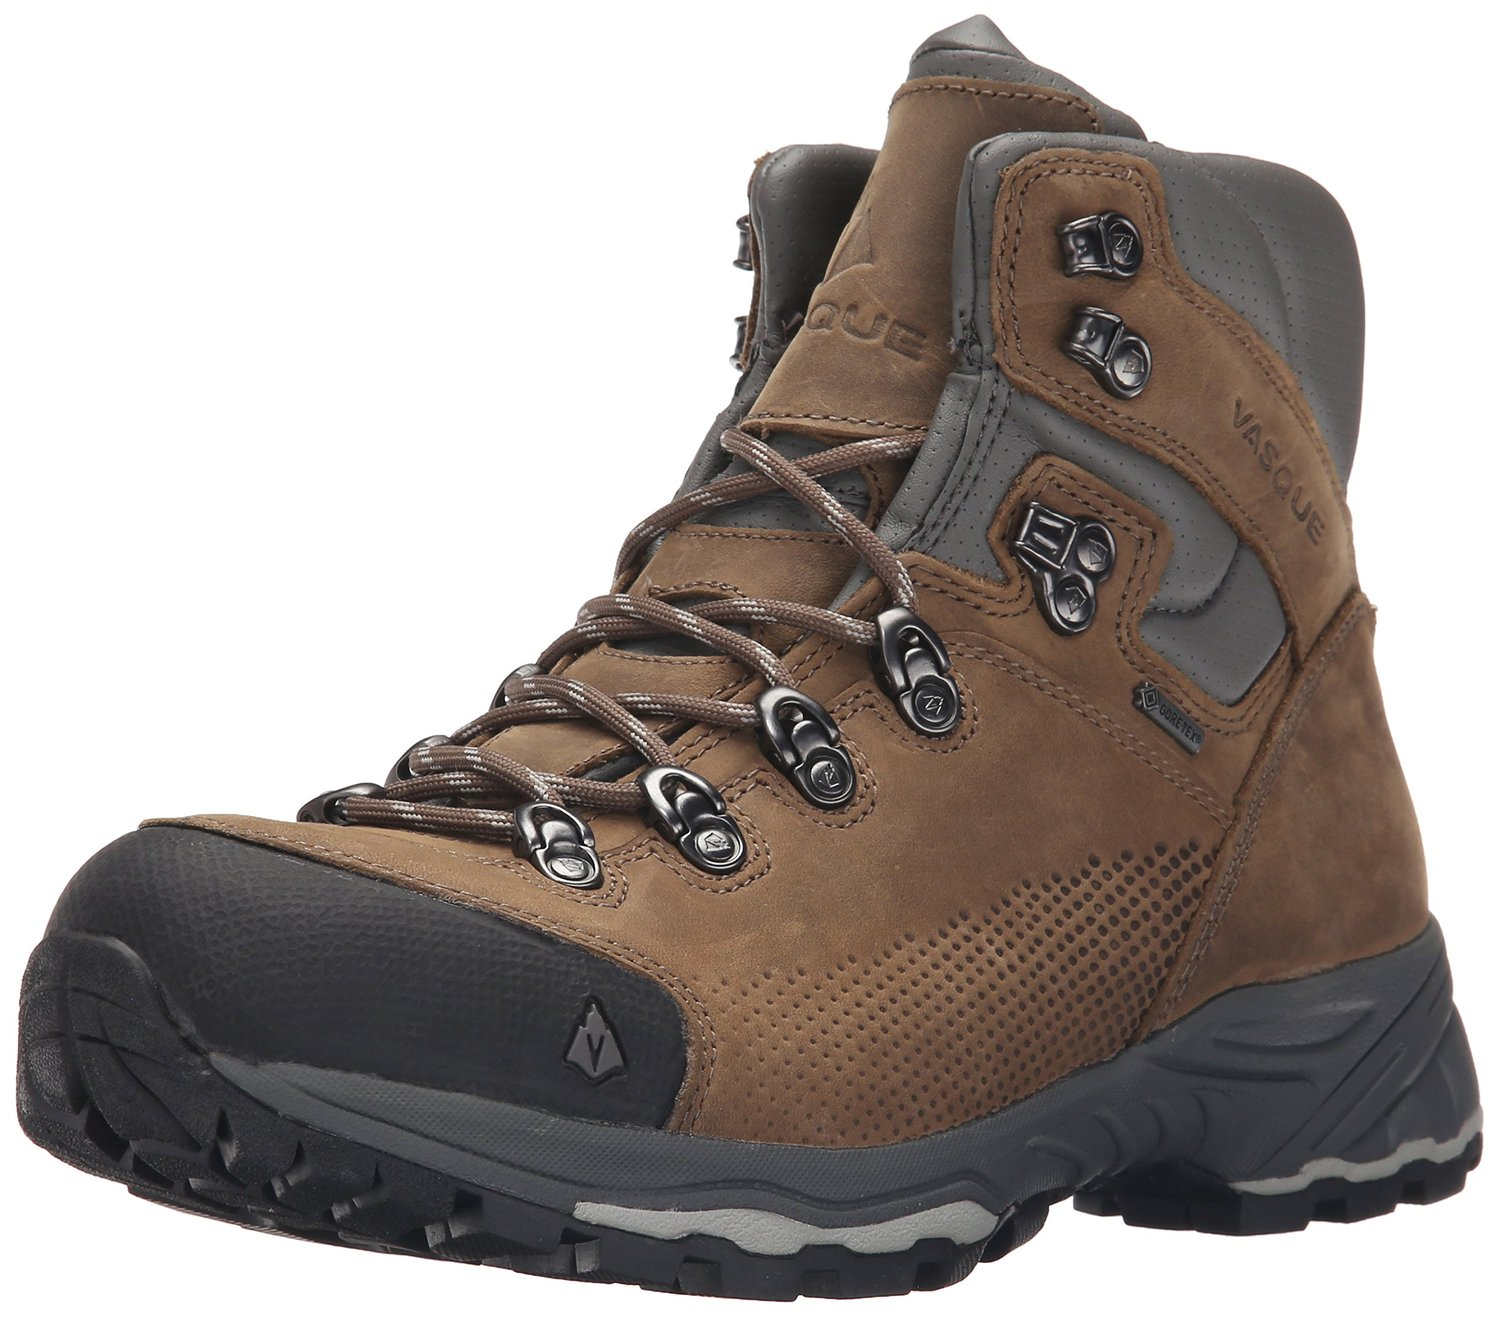 Vasque St Elias GTX Hiking BOOTS for Men Size 10m Bungee Cord/neutral Gray.  About this product. 10 watching. Picture 1 of 5; Picture 2 of 5; Picture 3  of 5 ...